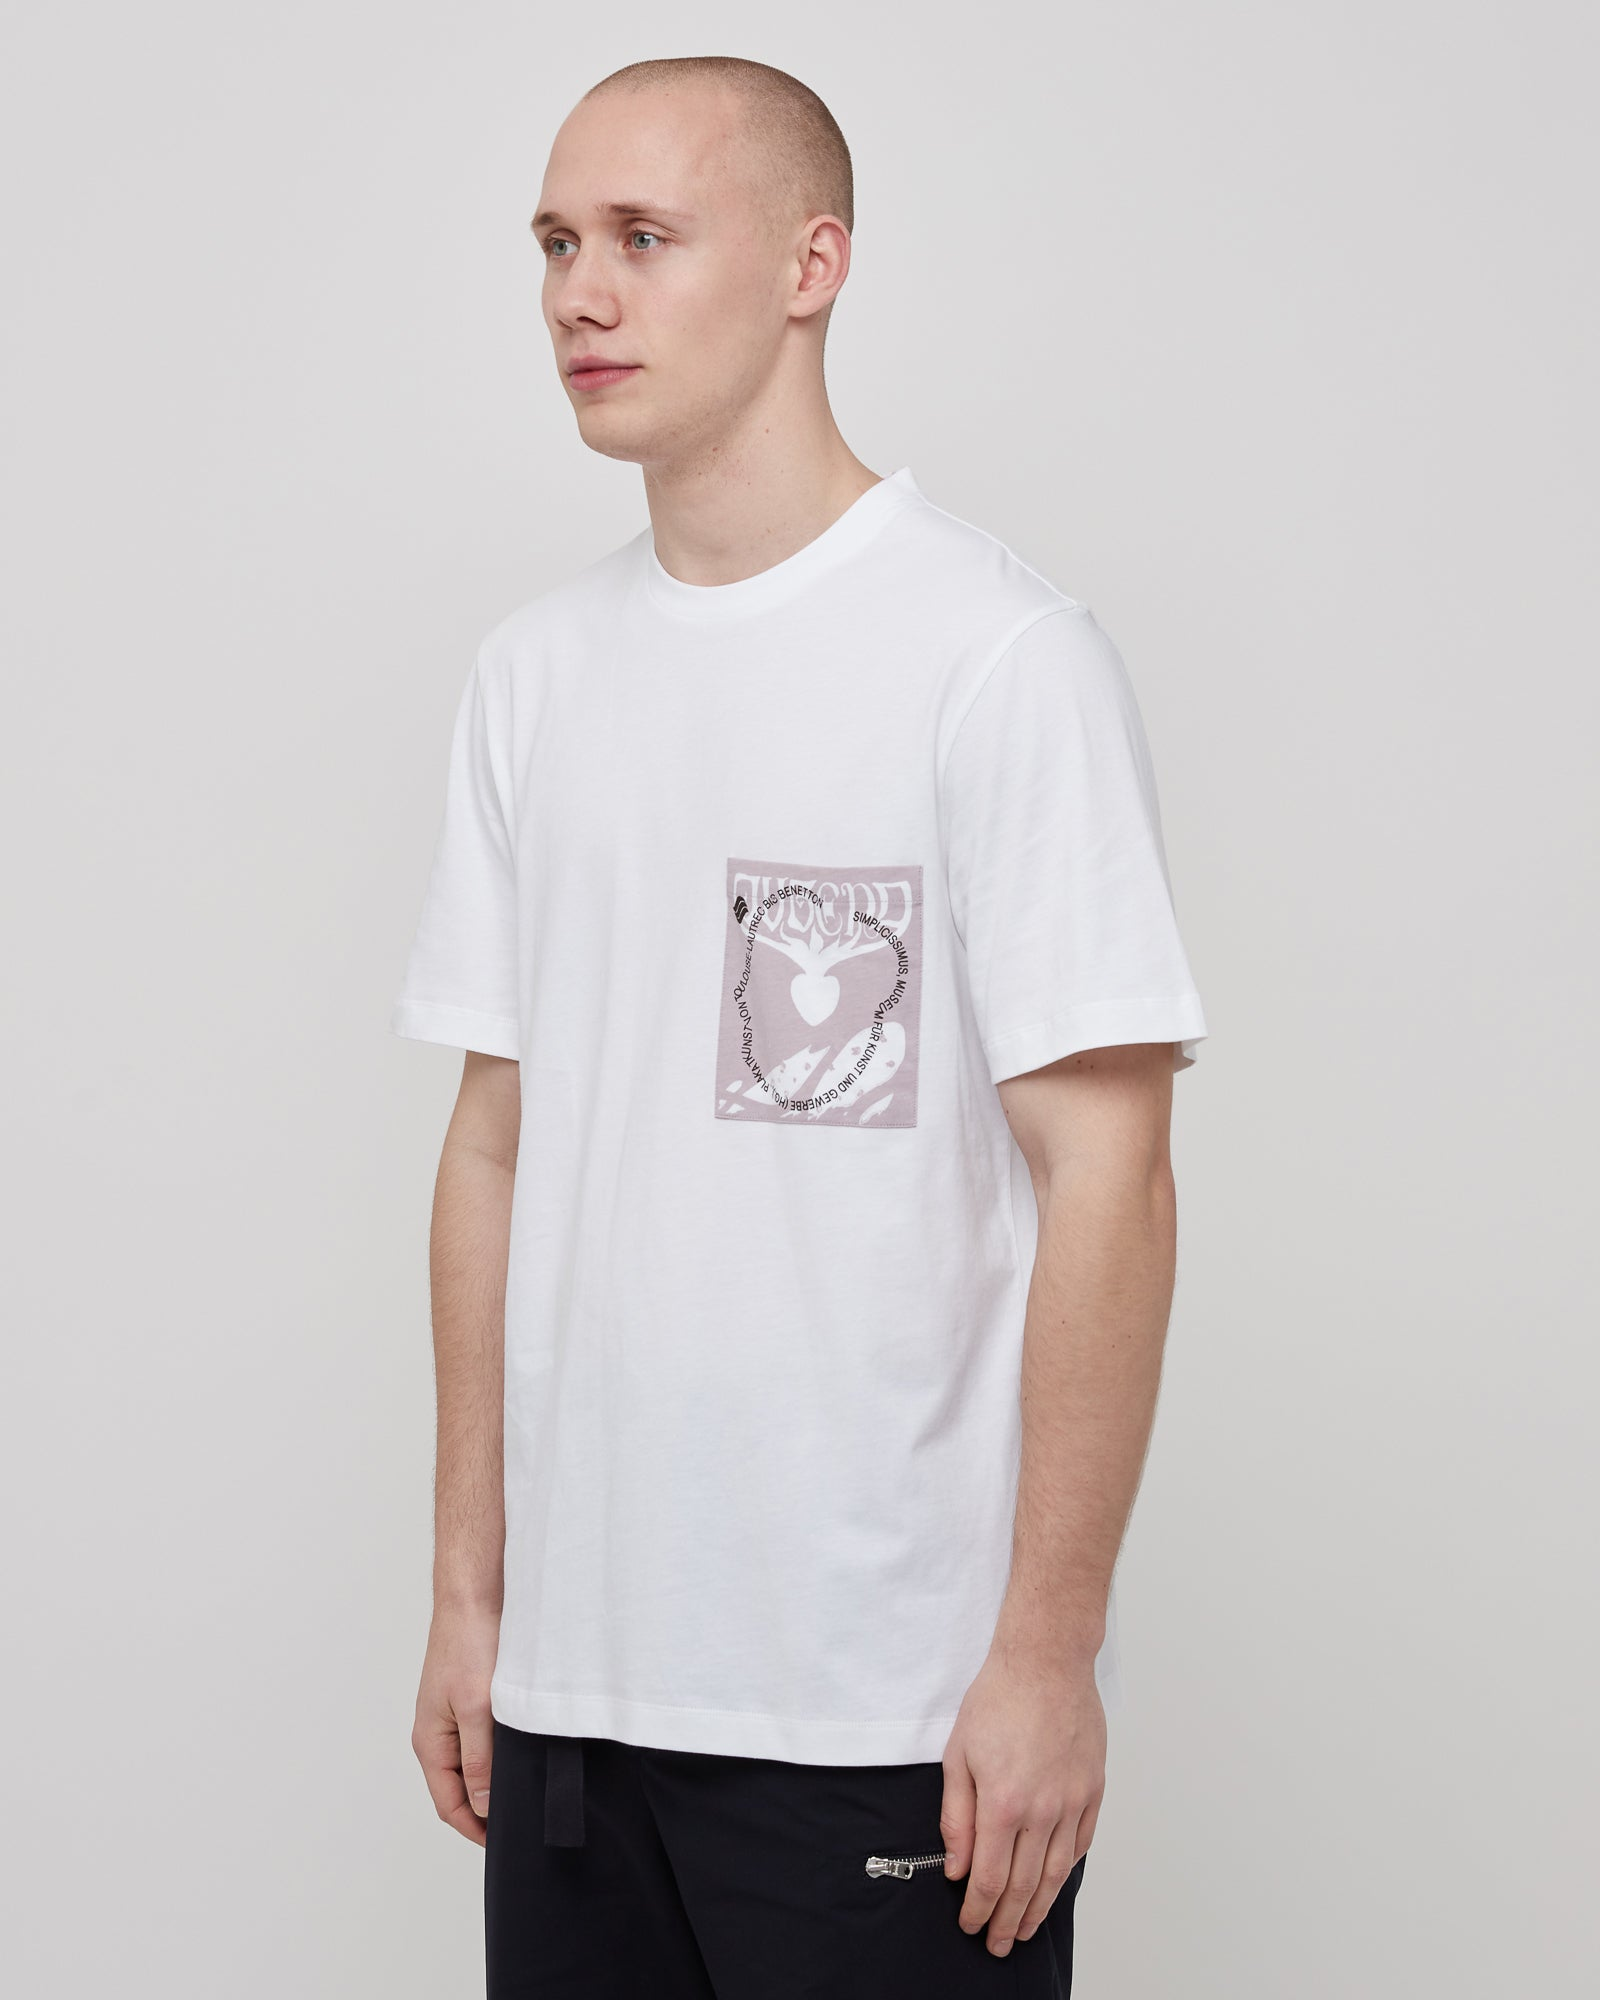 Jugend T-Shirt in White